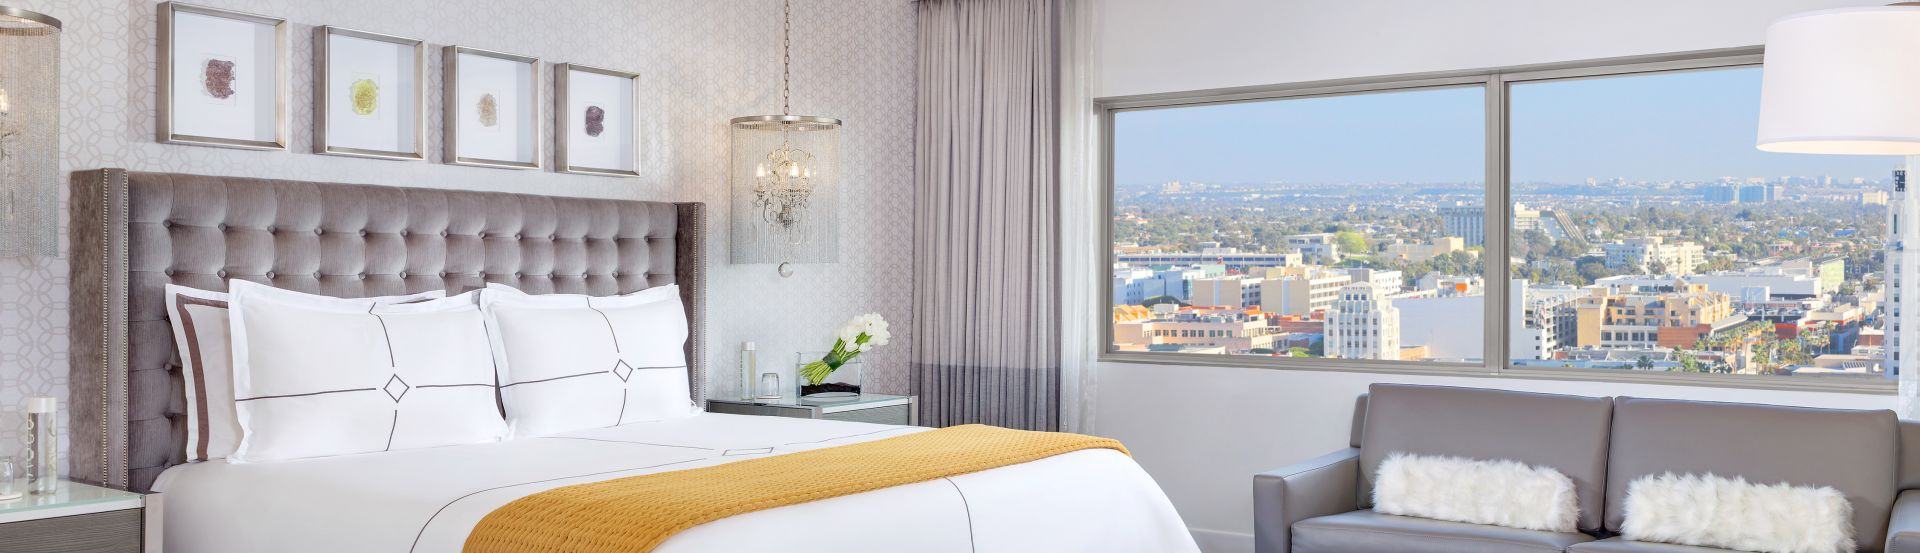 HUNTLEY KING Hotel Rooms Breathtaking Views of the pacific ocean and Santa Monica Cityscape